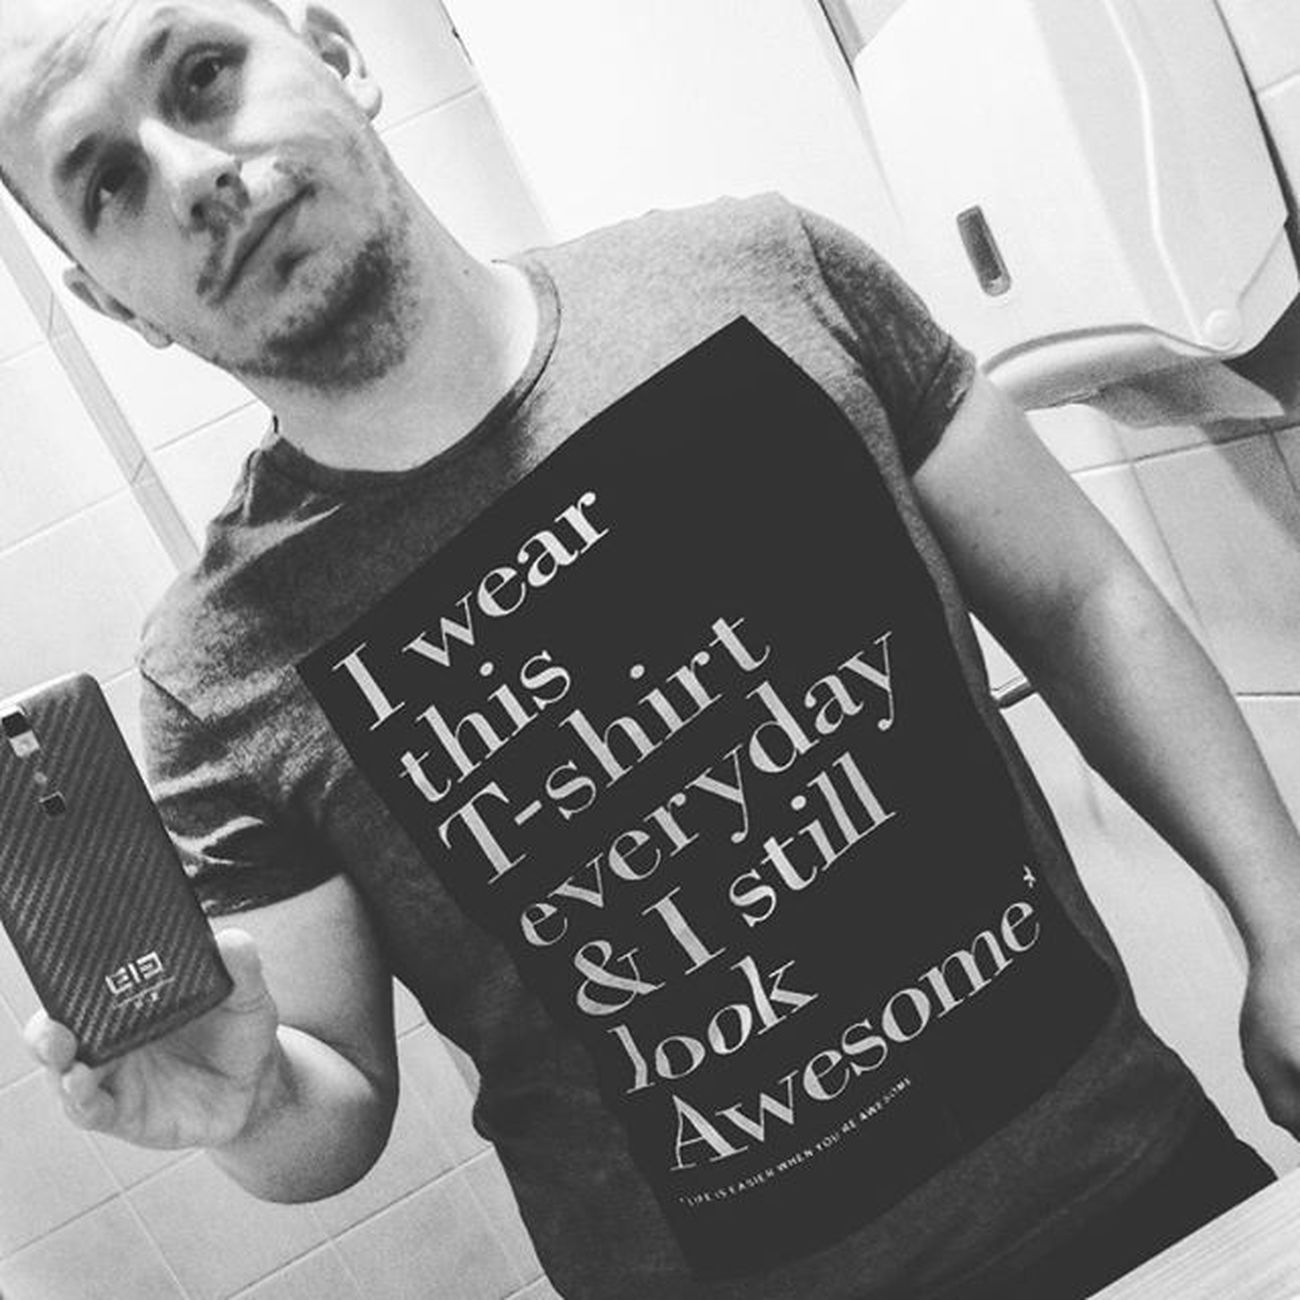 I am awesome!!! ✌ 👆👑👕😂😂😂😂 Lifeiseasierwhenyouareawesome Dailytshirt Iamawesome Awesome Tshirt Reserved Fashion Quote Selfi Blackandwhite Man Pózoljwcben Azanyámhétszentségitdeszépvagyok